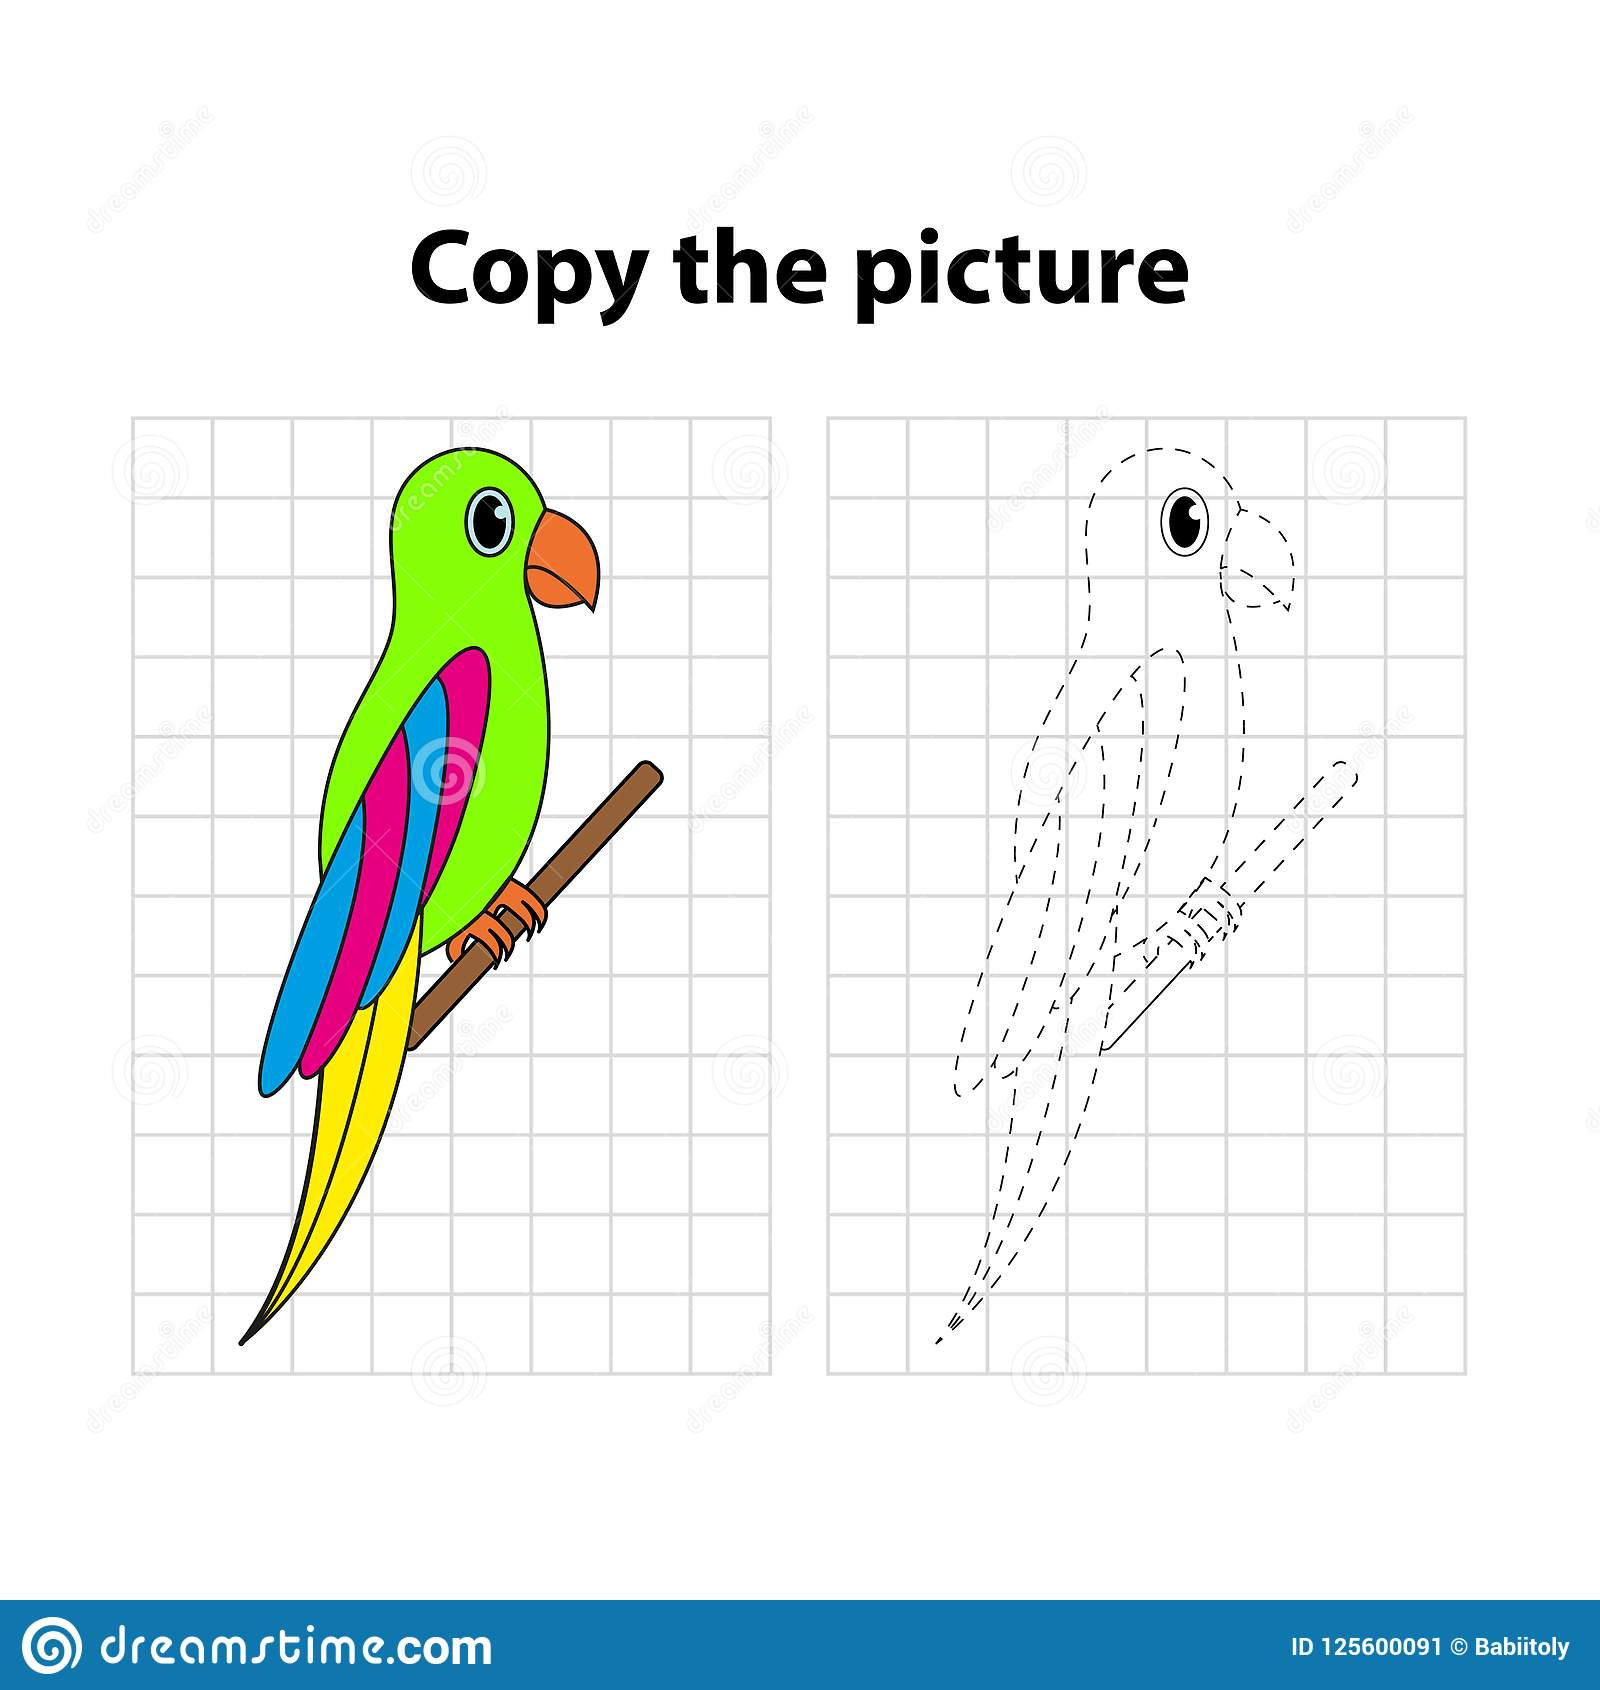 Worksheet For Kids Copy The Picture Game For Children